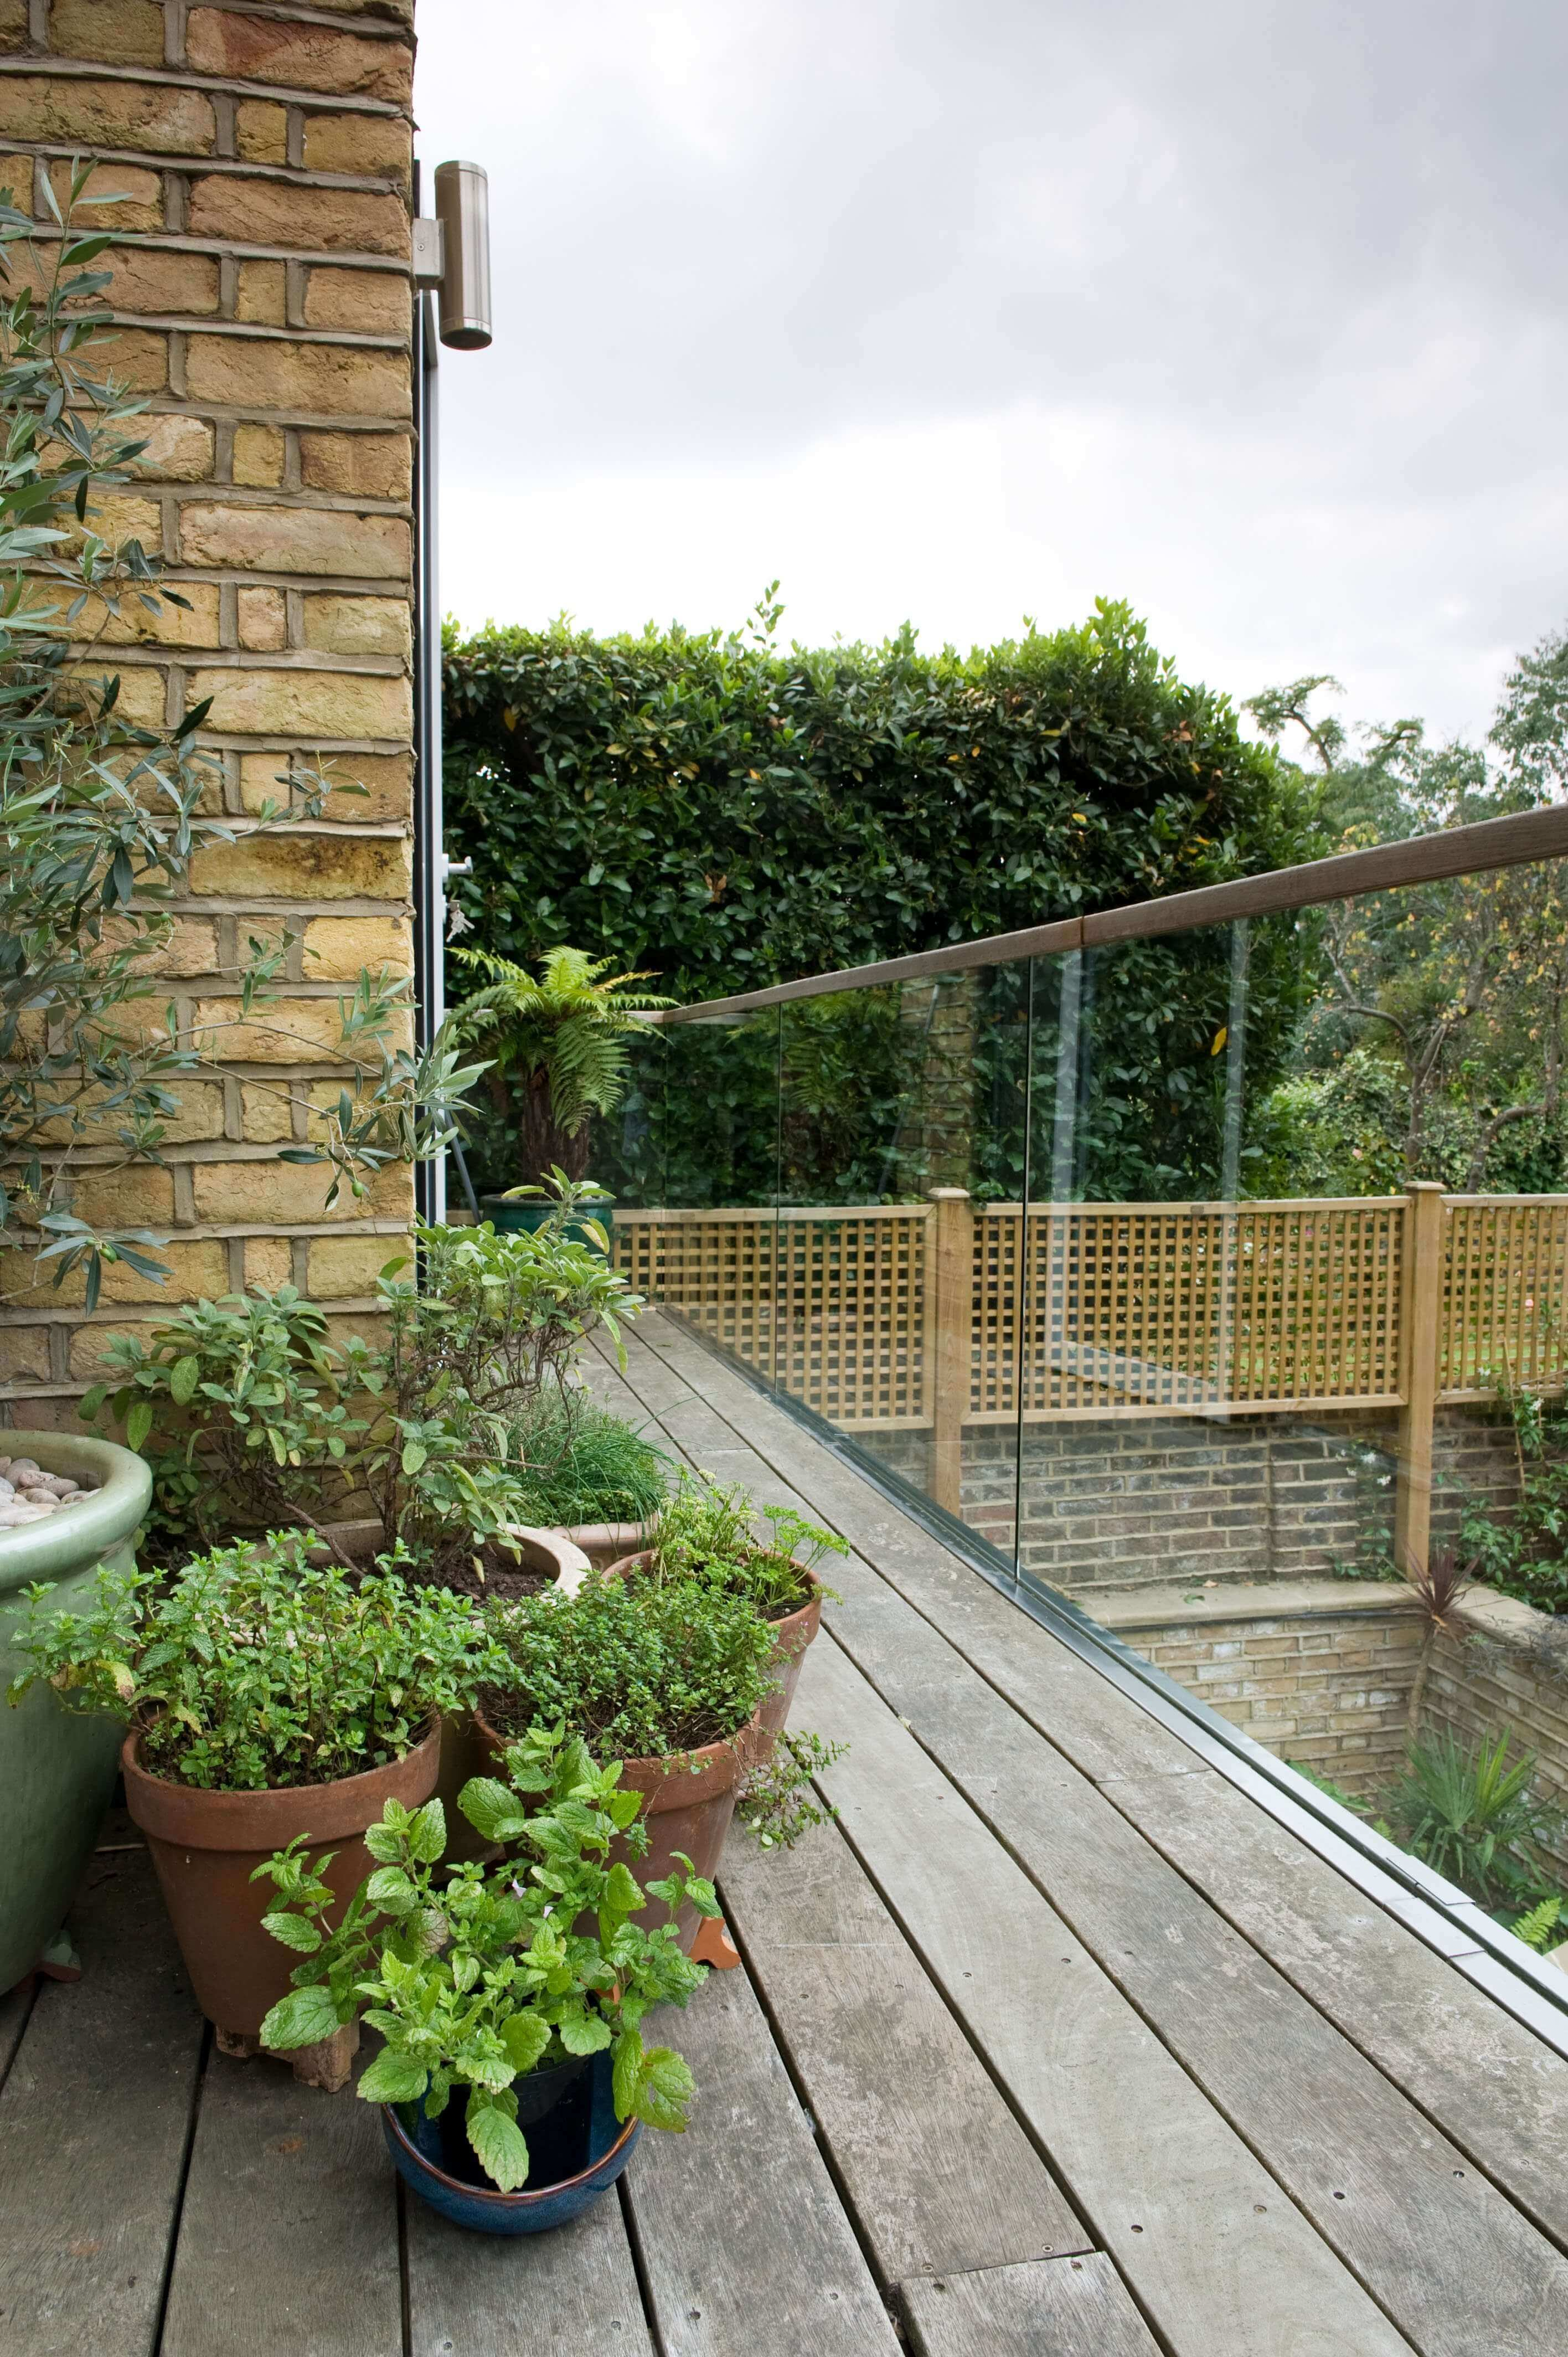 Jacksons Lattice trellis panels above wall